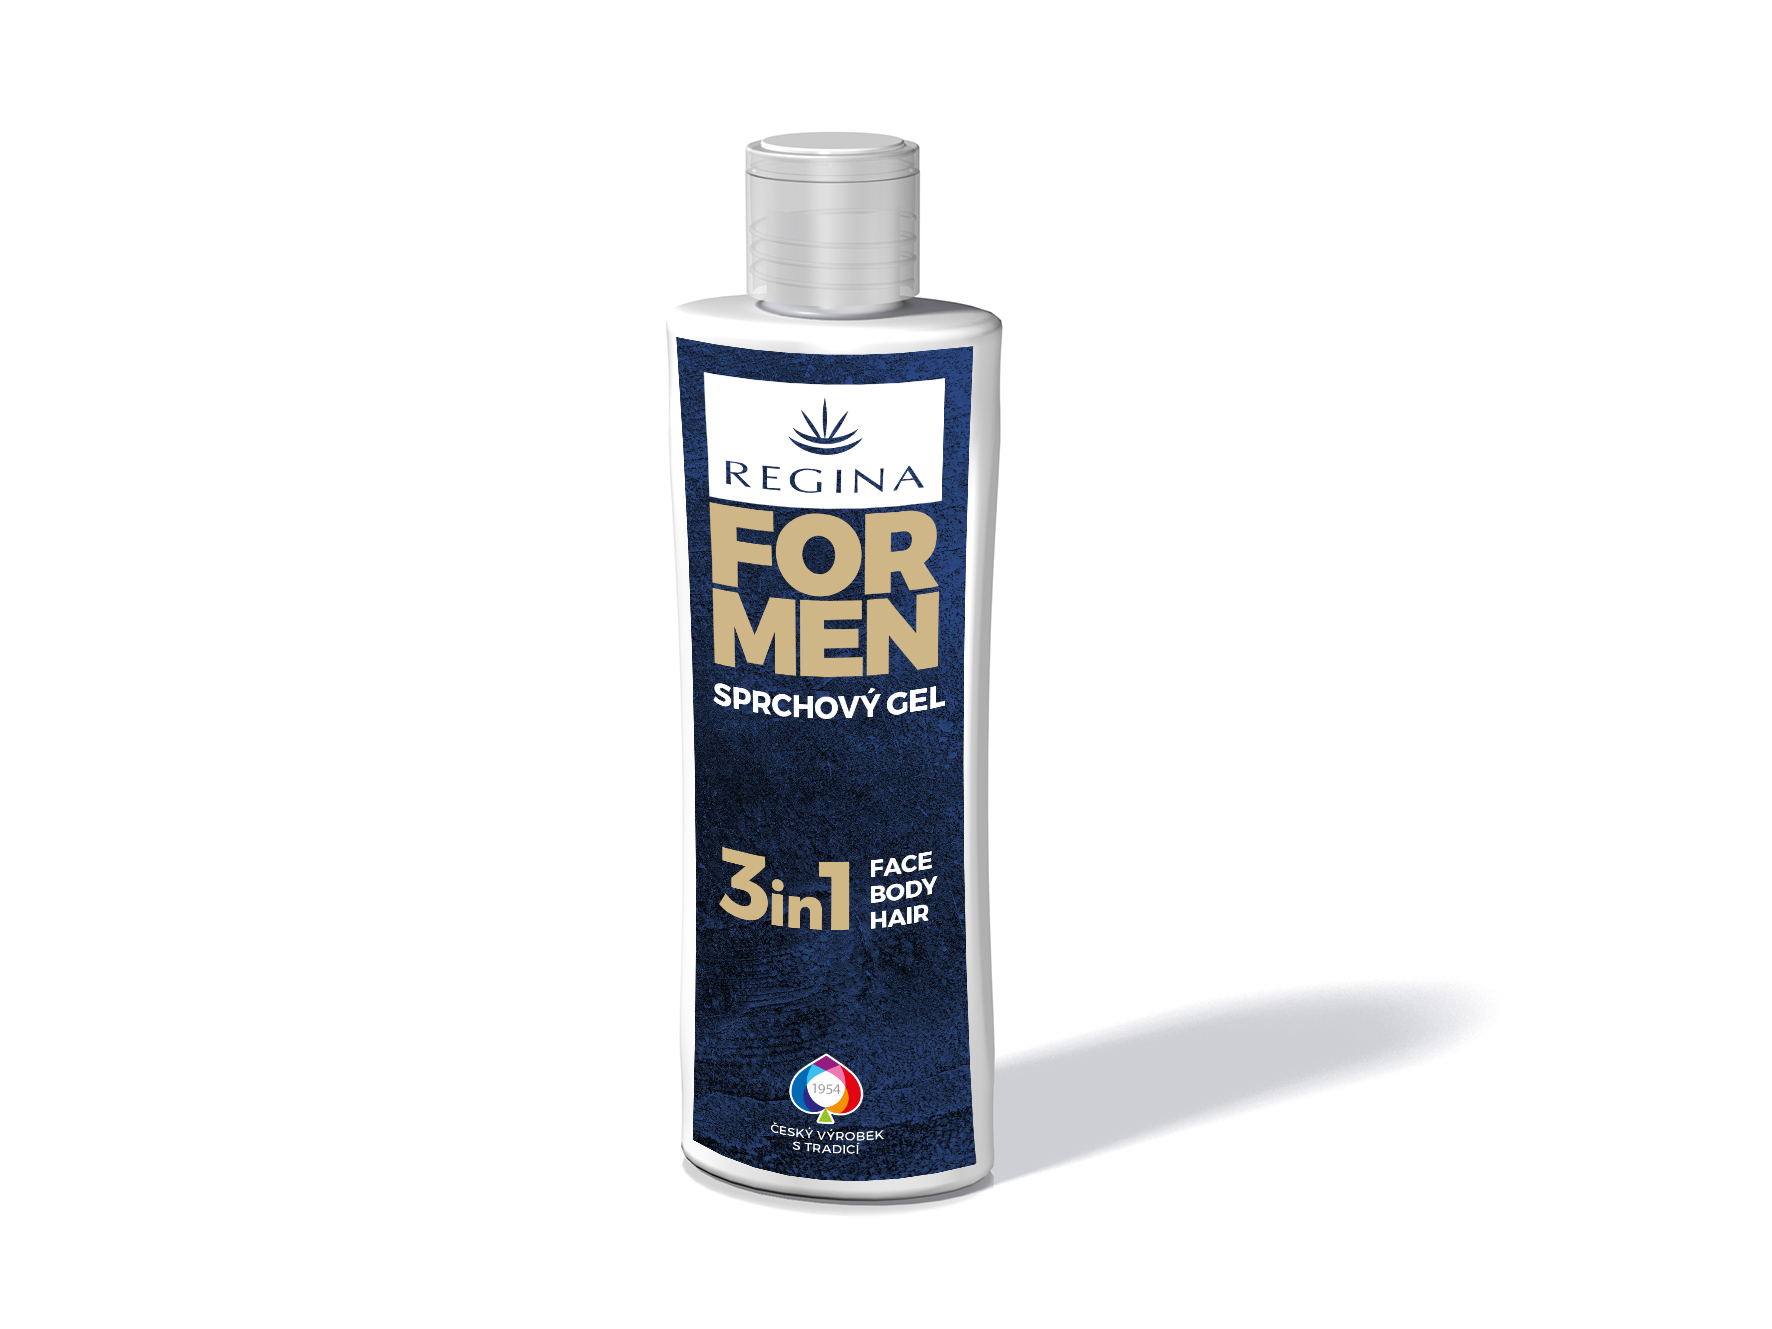 REGINA-FOR-MEN-sprchovy-gel-6-2020